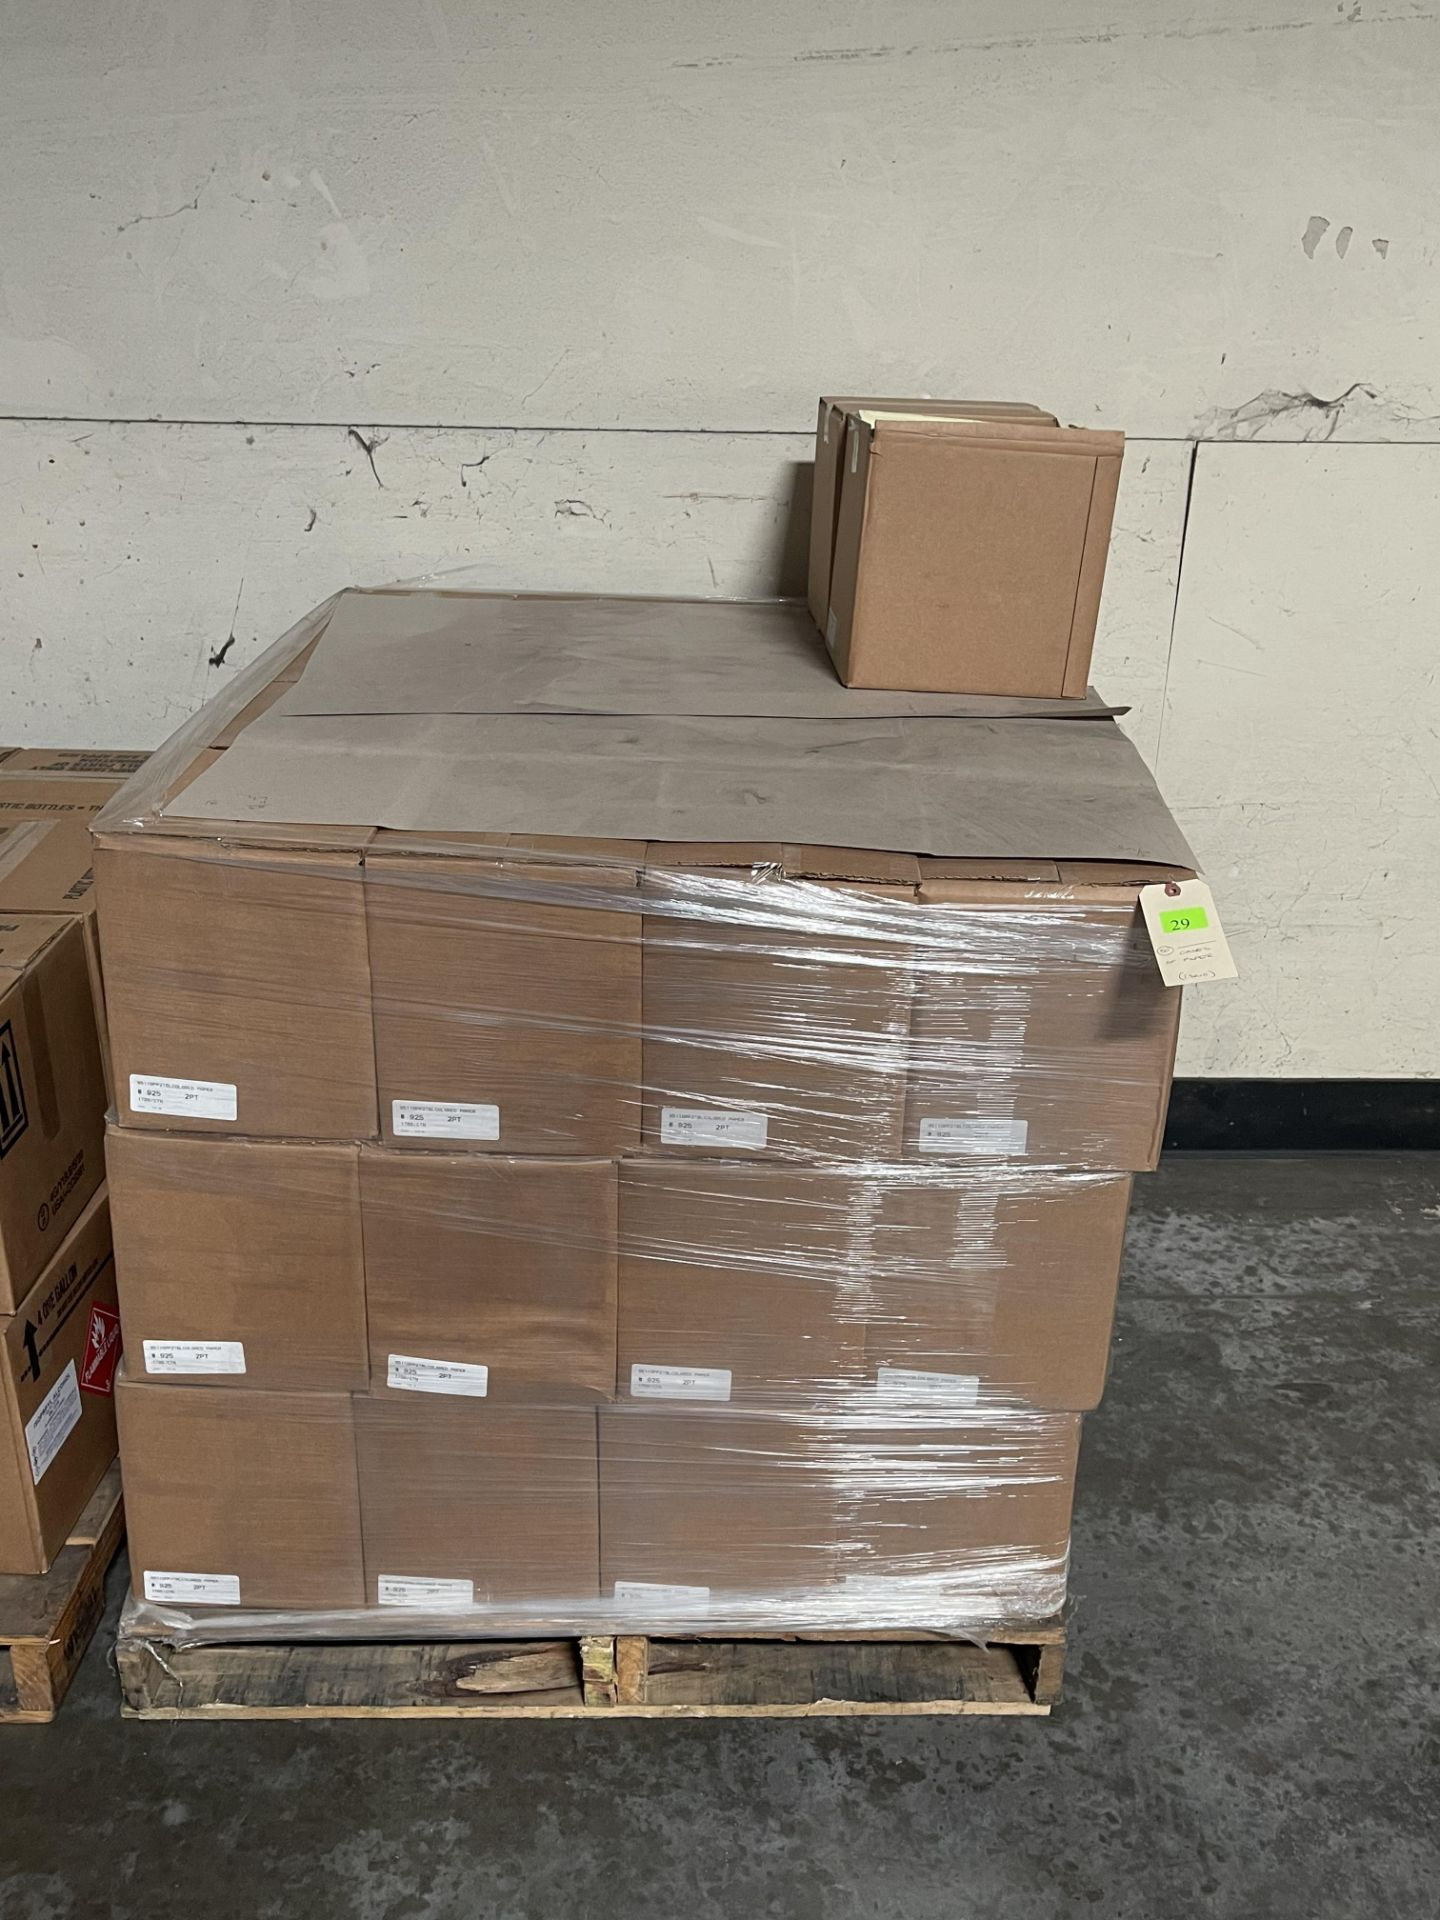 CASES OF PAPER 1 PALLET - Image 2 of 2